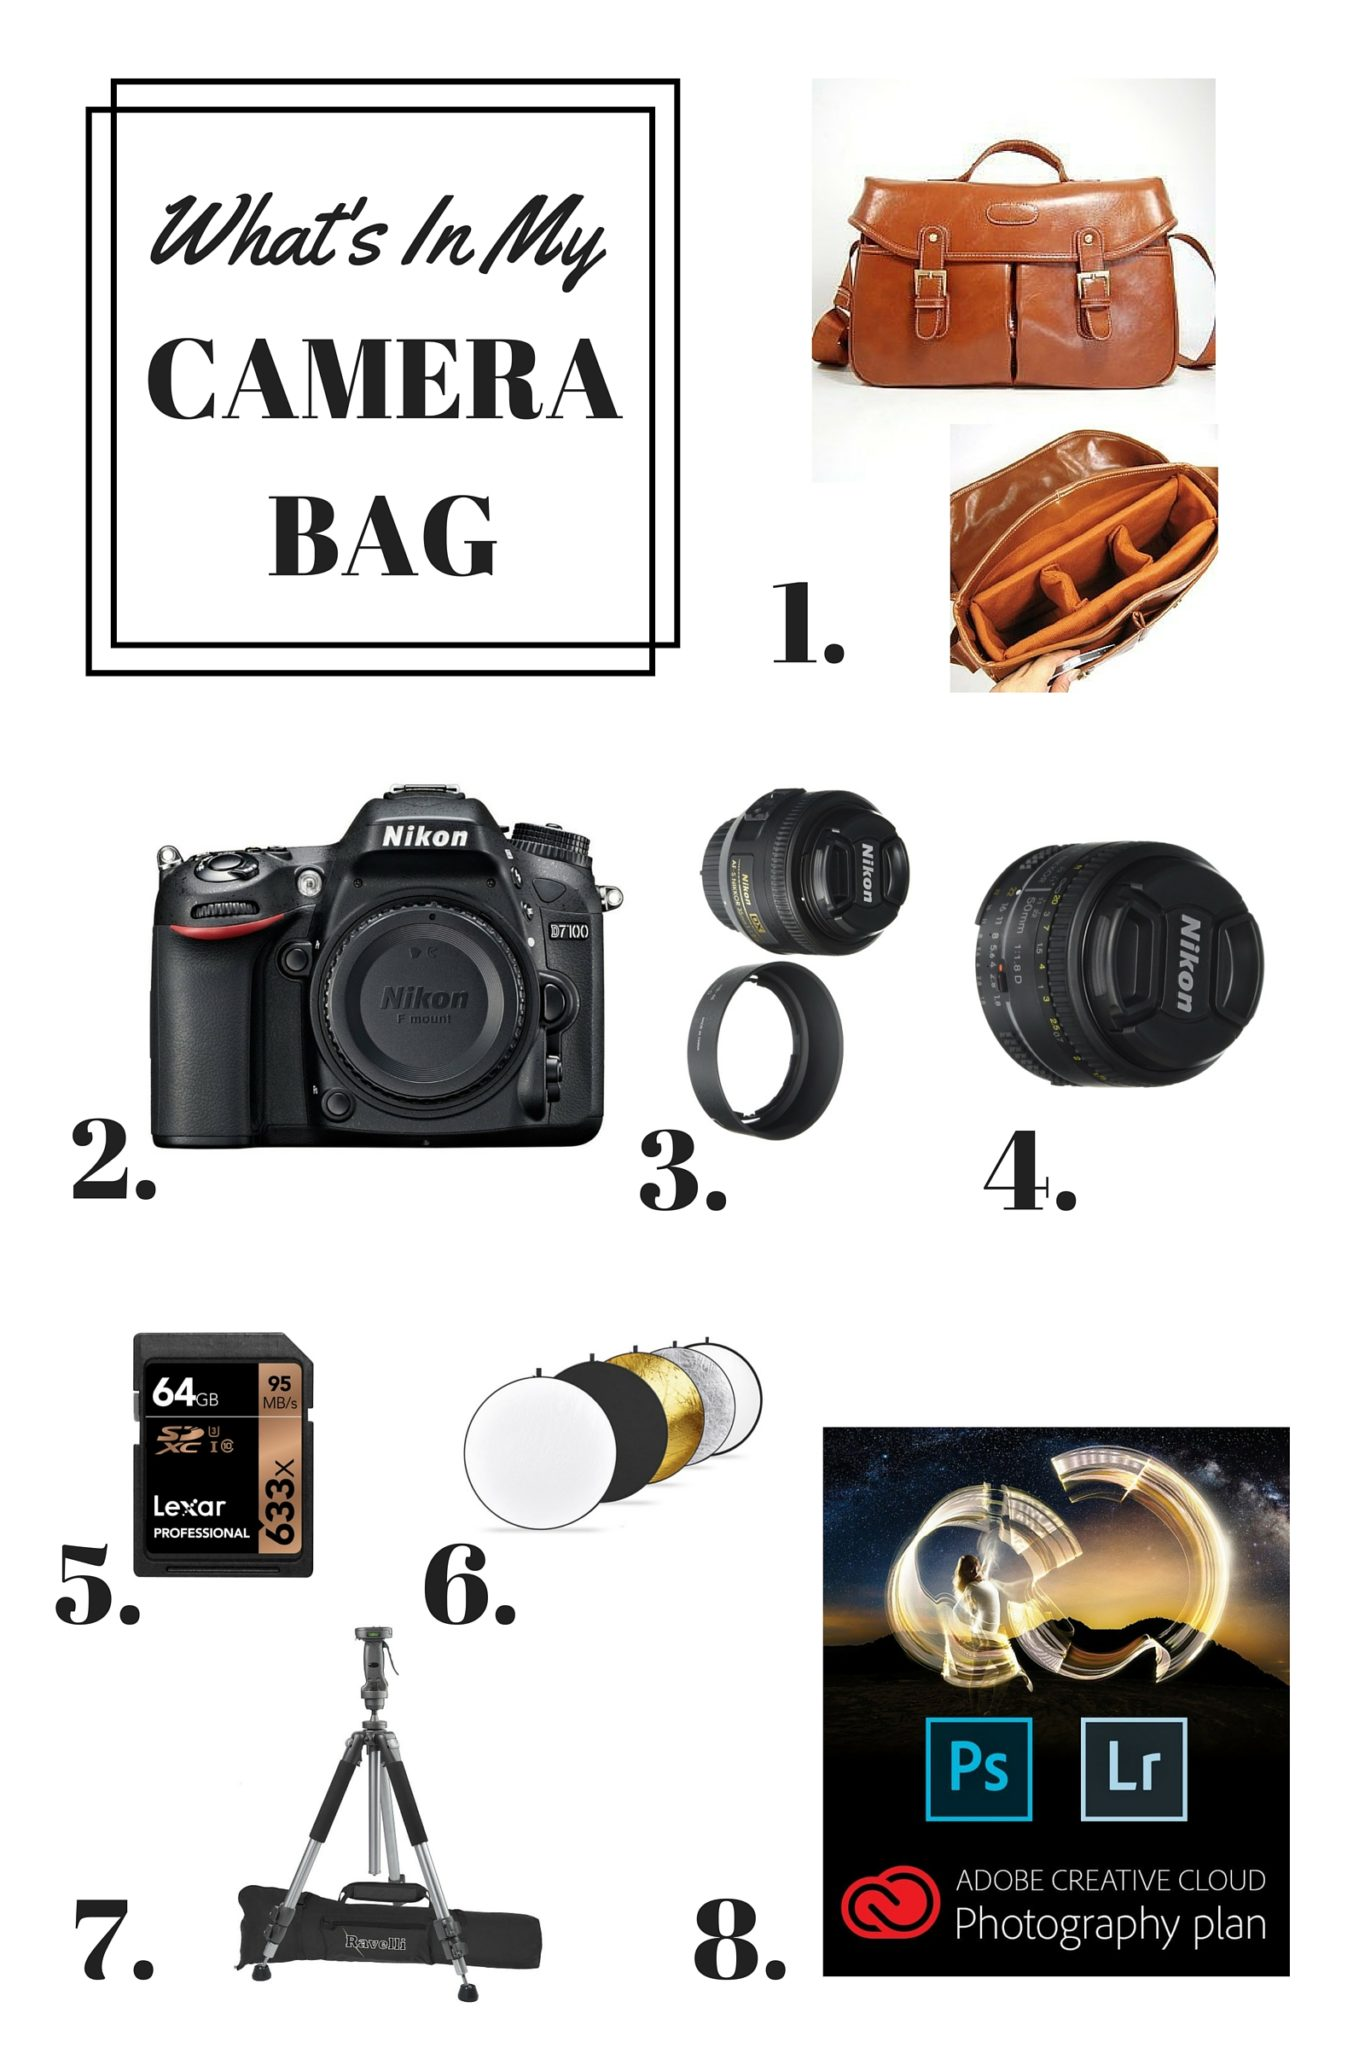 Find out What's In My Camera Bag that helps me capture mouth-watering images of tasty recipes. Food Photography Must Haves - more info @LittleFiggyFood